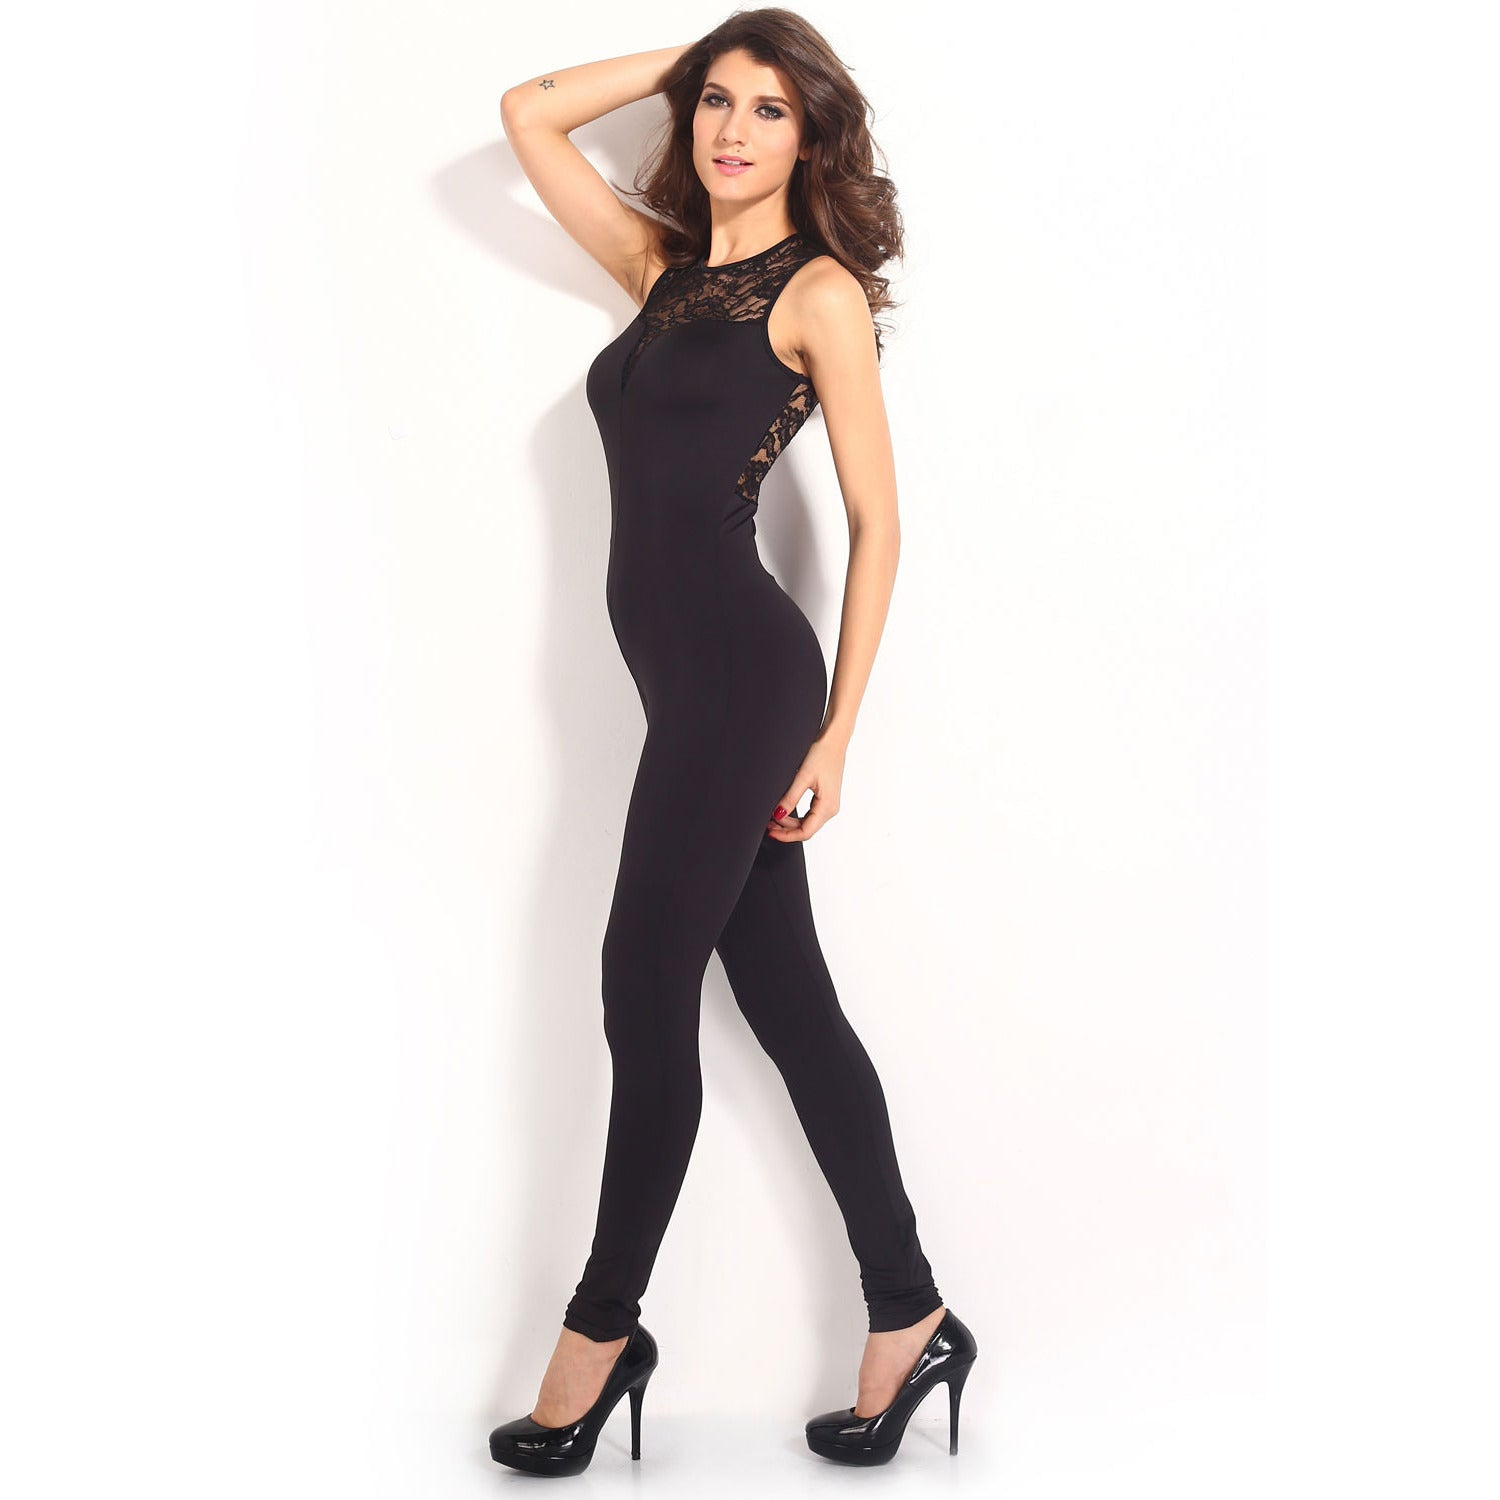 Heart-Neck Lace Black Jumpsuit LAVELIQ - LAVELIQ - 5